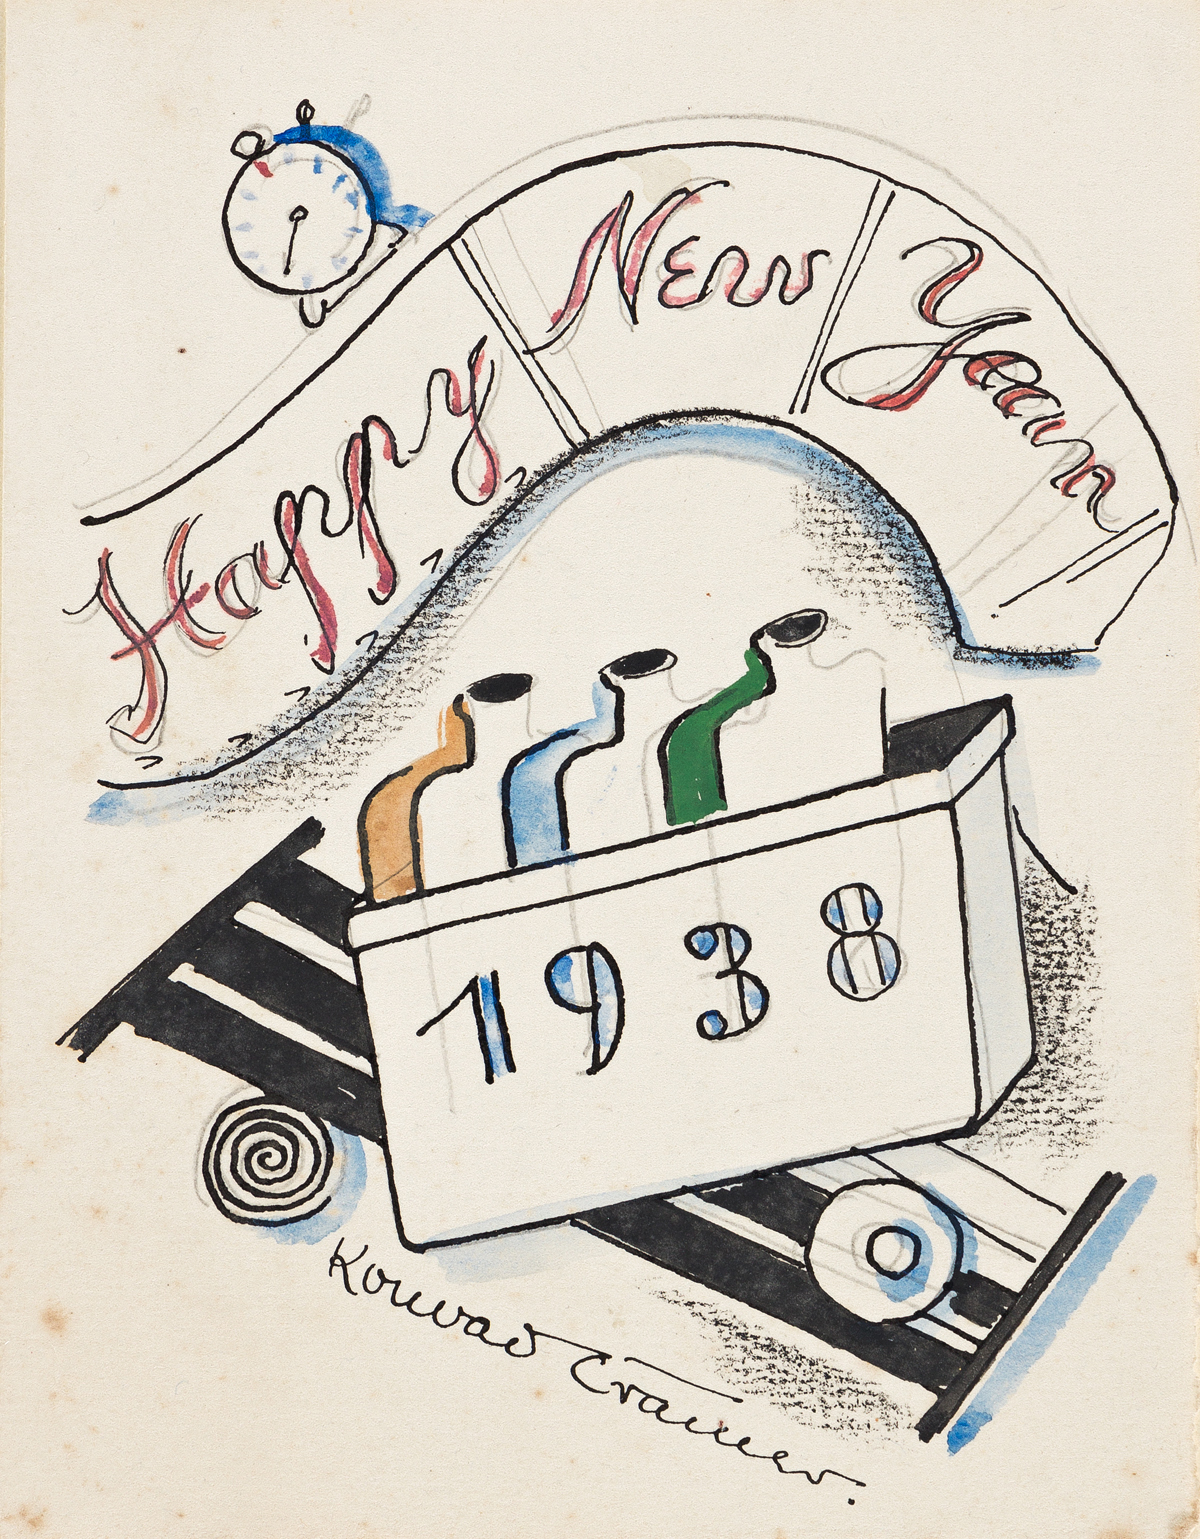 KONRAD CRAMER (1888 - 1963, AMERICAN) Untitled, (A group of four New Years cards).